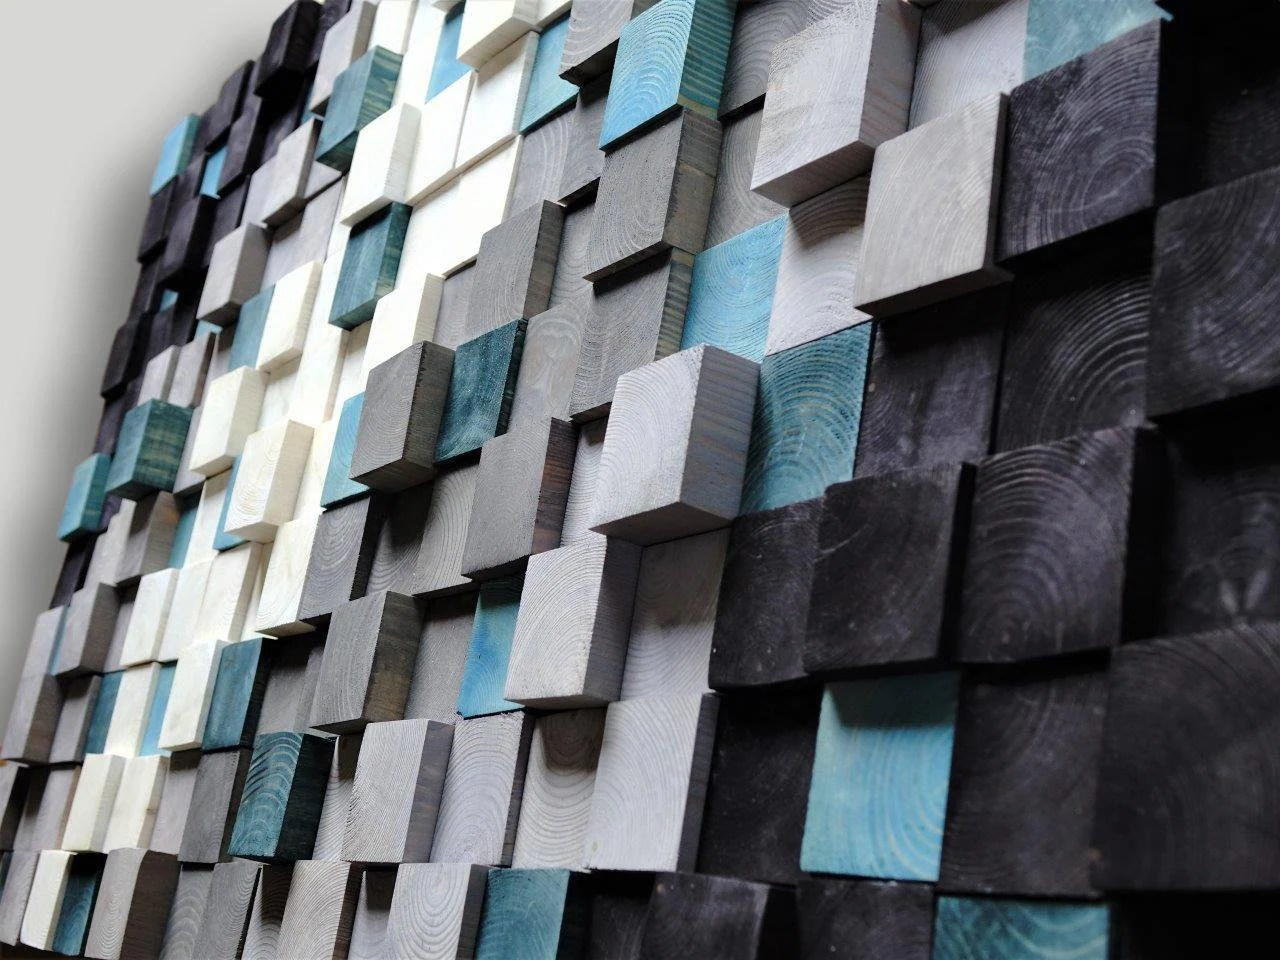 Wooden Wall Art, Textured Wooden Wall Art, Mosaic Wall